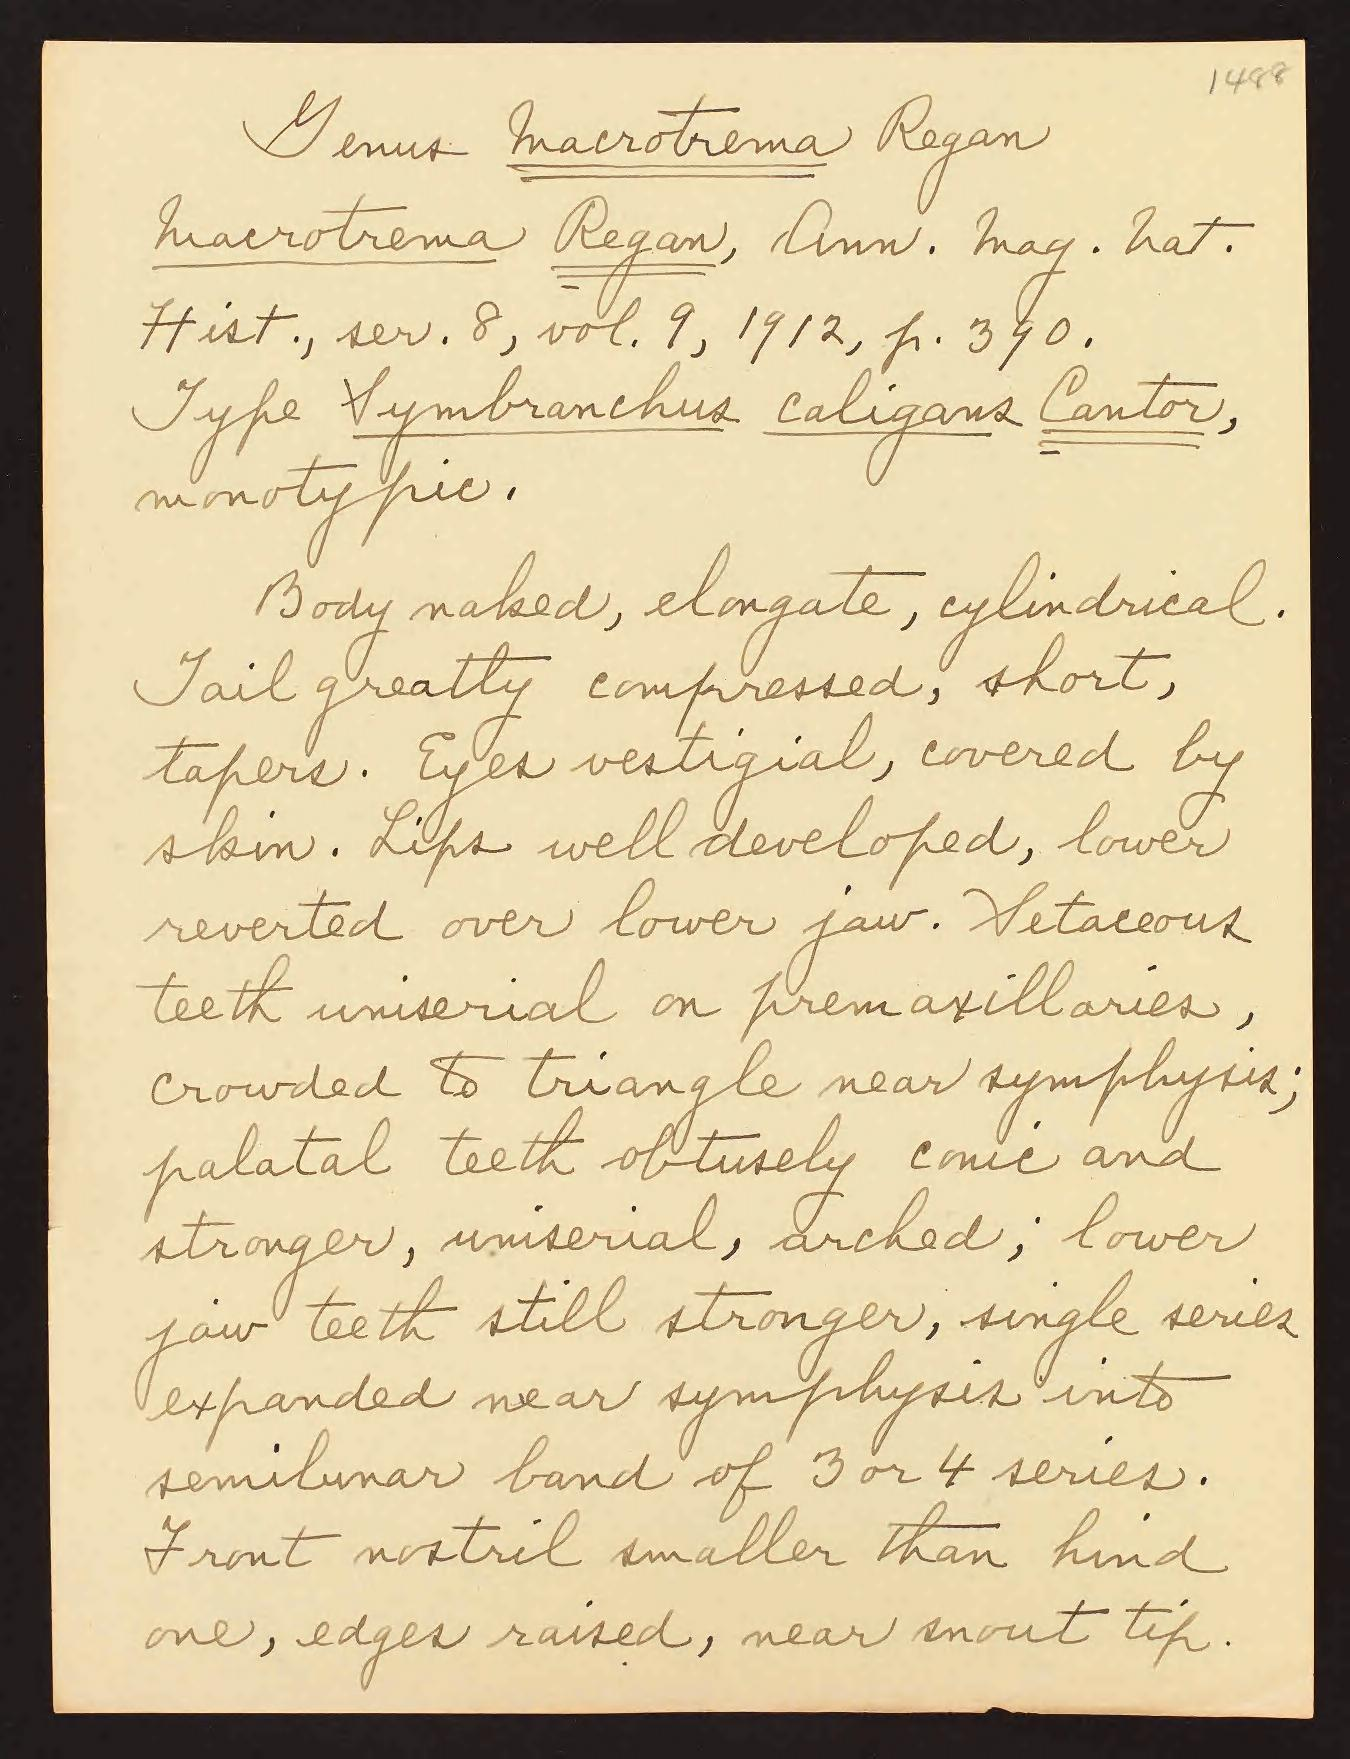 Fowler, Henry Weed. Manuscript of Henry Weed Fowler on the fishes of the Philippines, unpublished, circa 1930-1941. Order Synbranchii. Digitized in BHL by Smithsonian Institution Archives. https://biodiversitylibrary.org/page/55811117